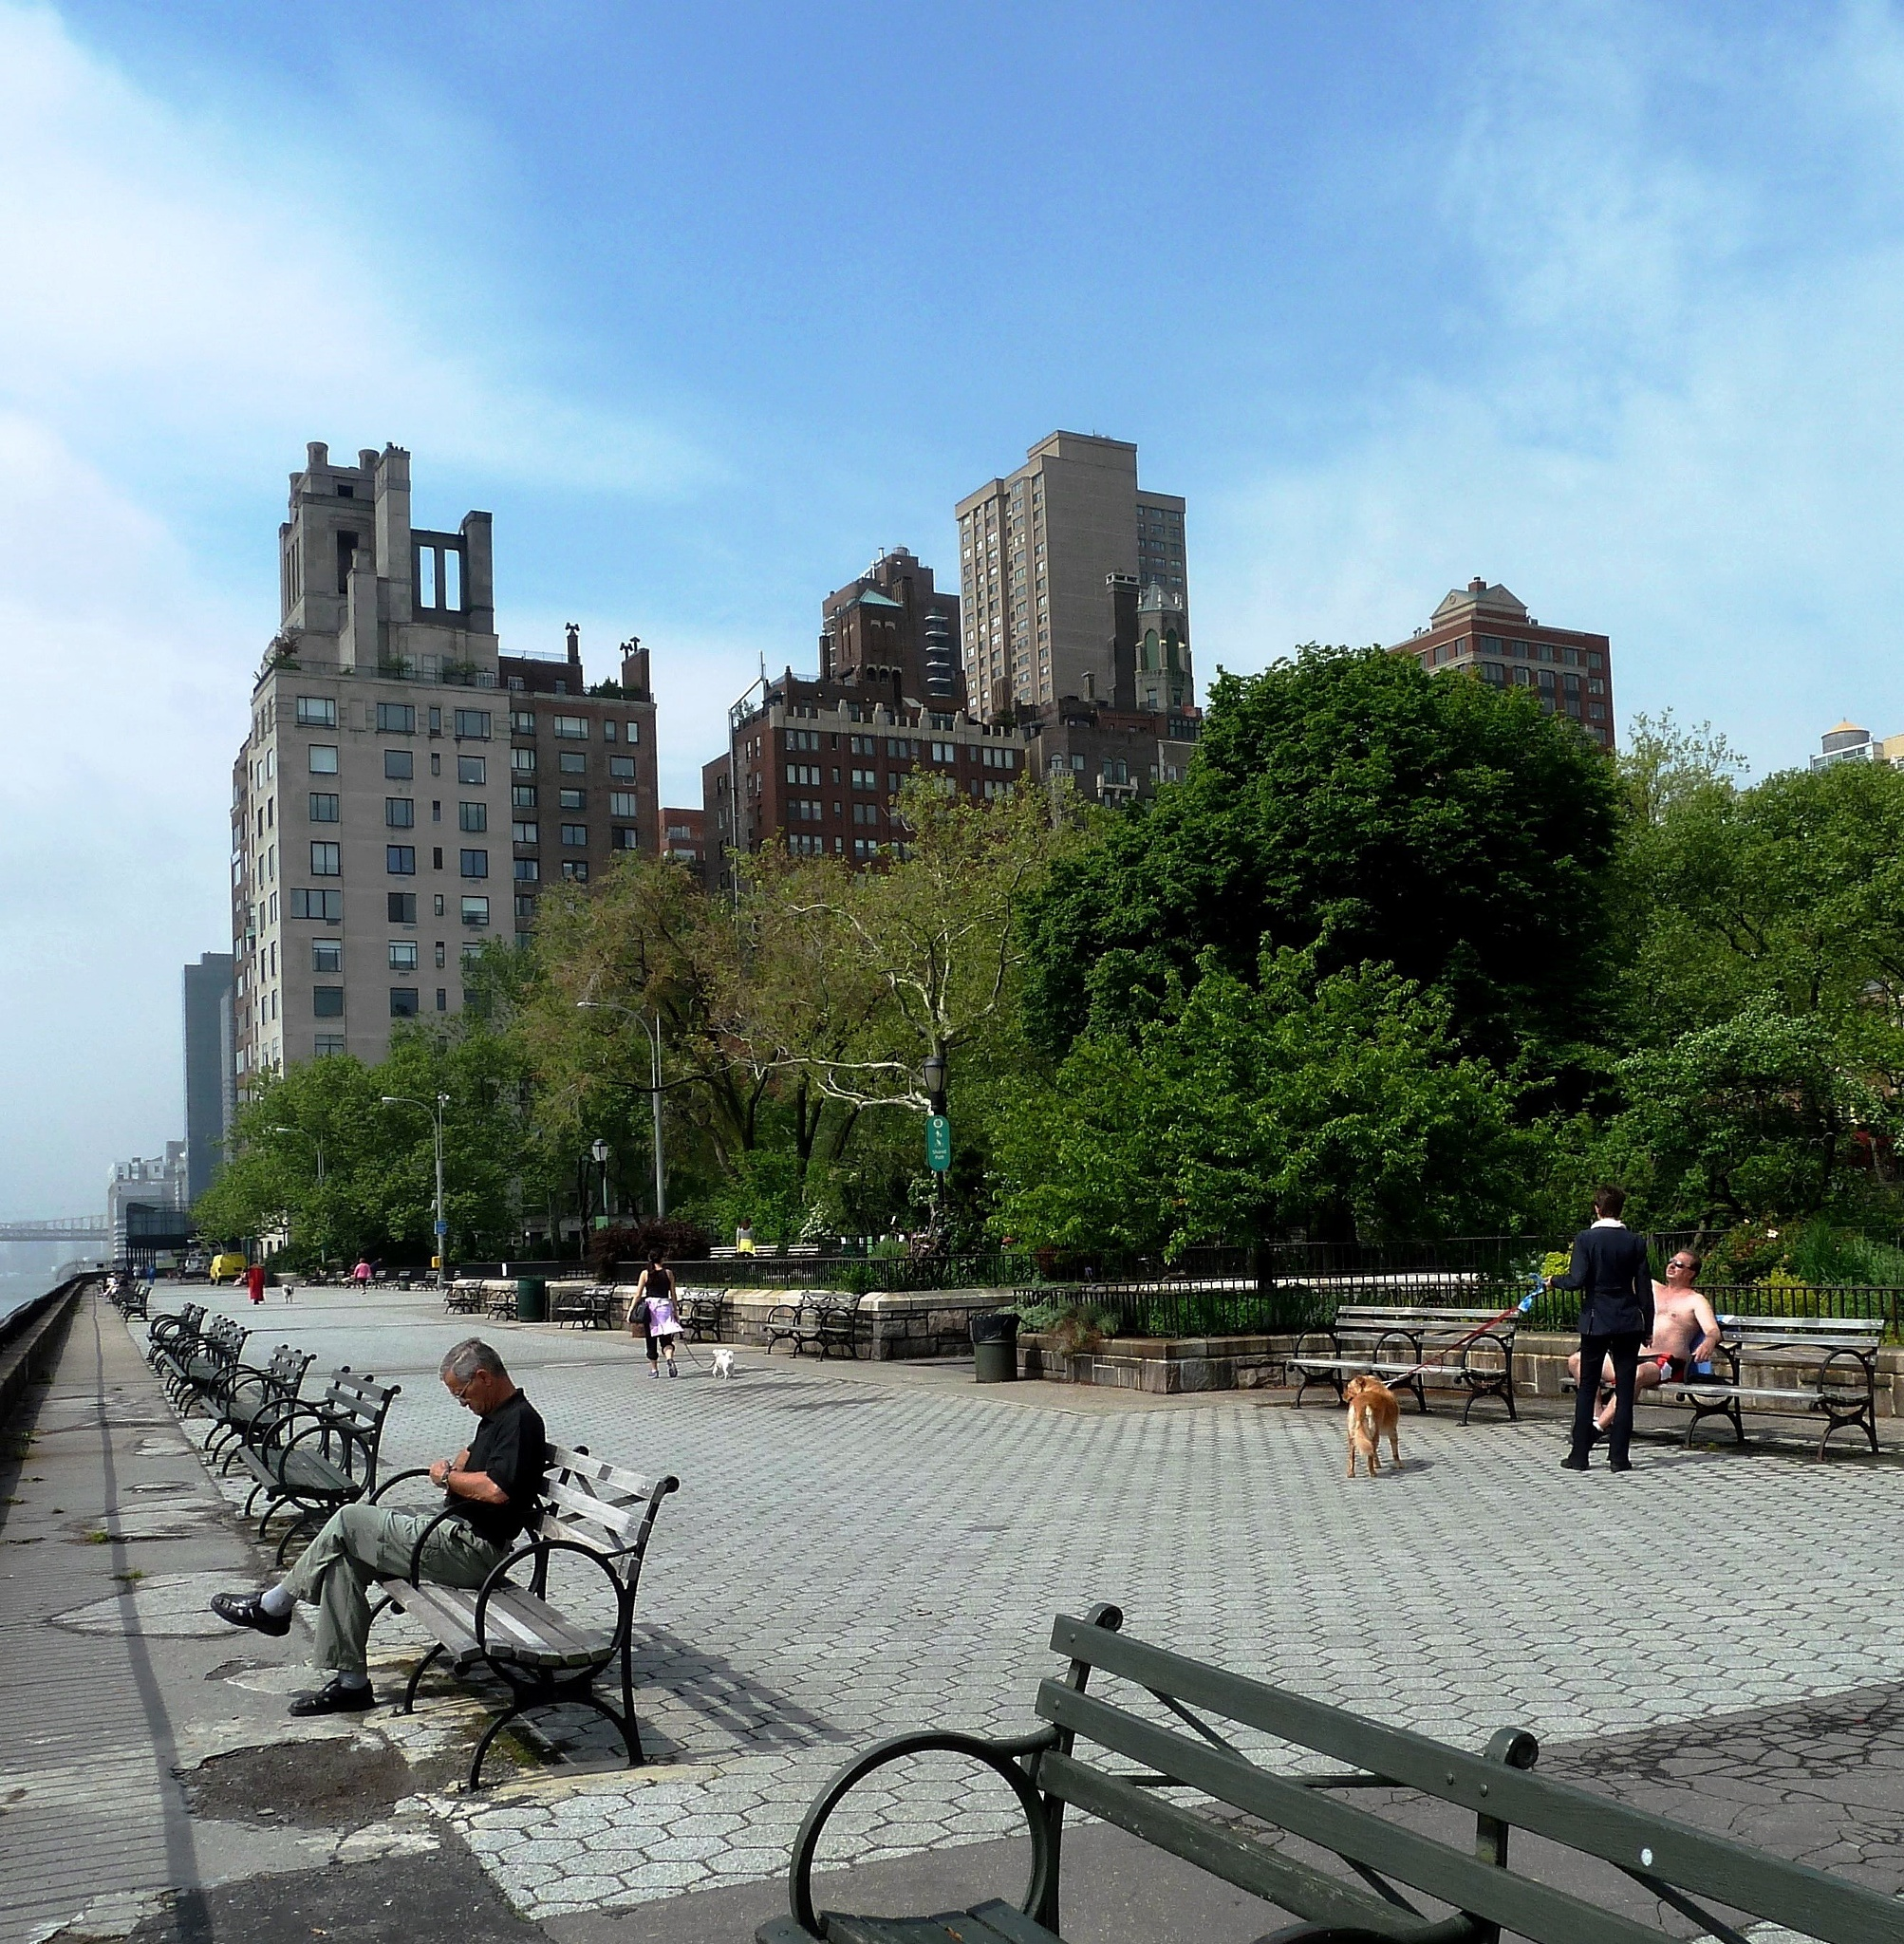 9:36 a.m., a Spring morning on the promenade at Carl Schurz Park, NYC, looking South. by Anton Agalbato